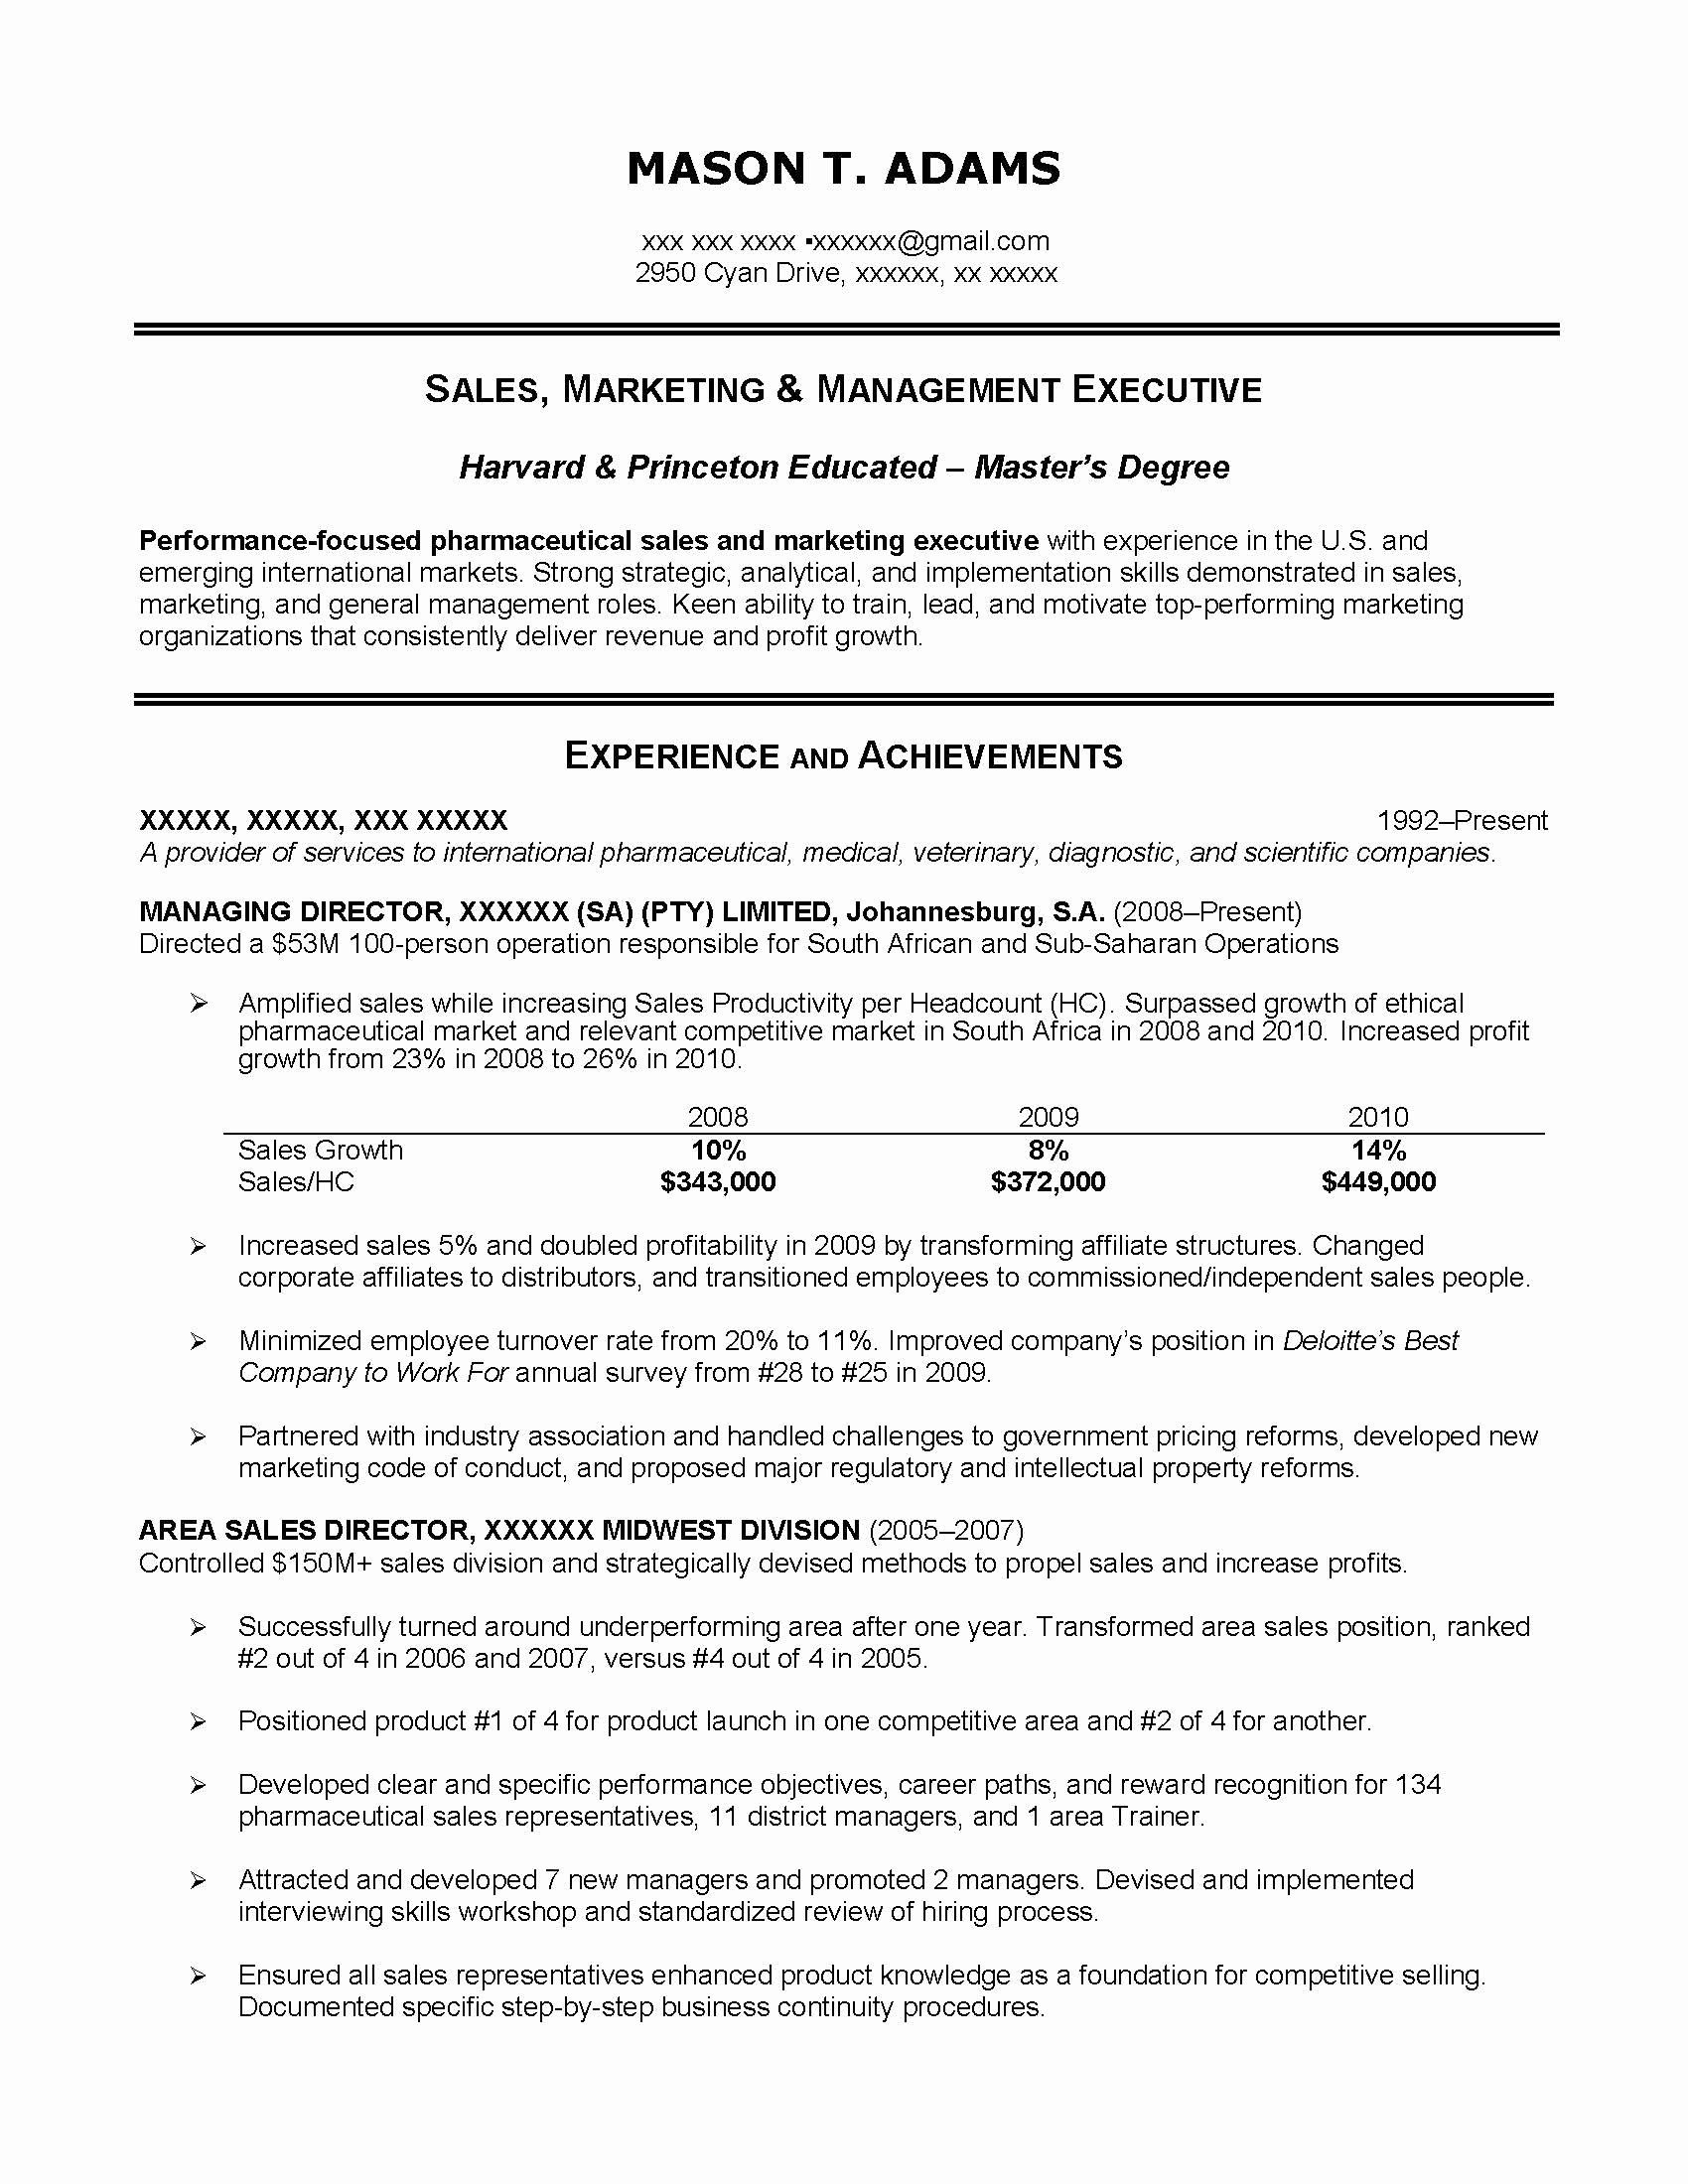 sales manager resume examples example-Sales Manager Resumes Samples Sales Manager Resume Examples Fresh Mark F Hagerty Od Training 15-e